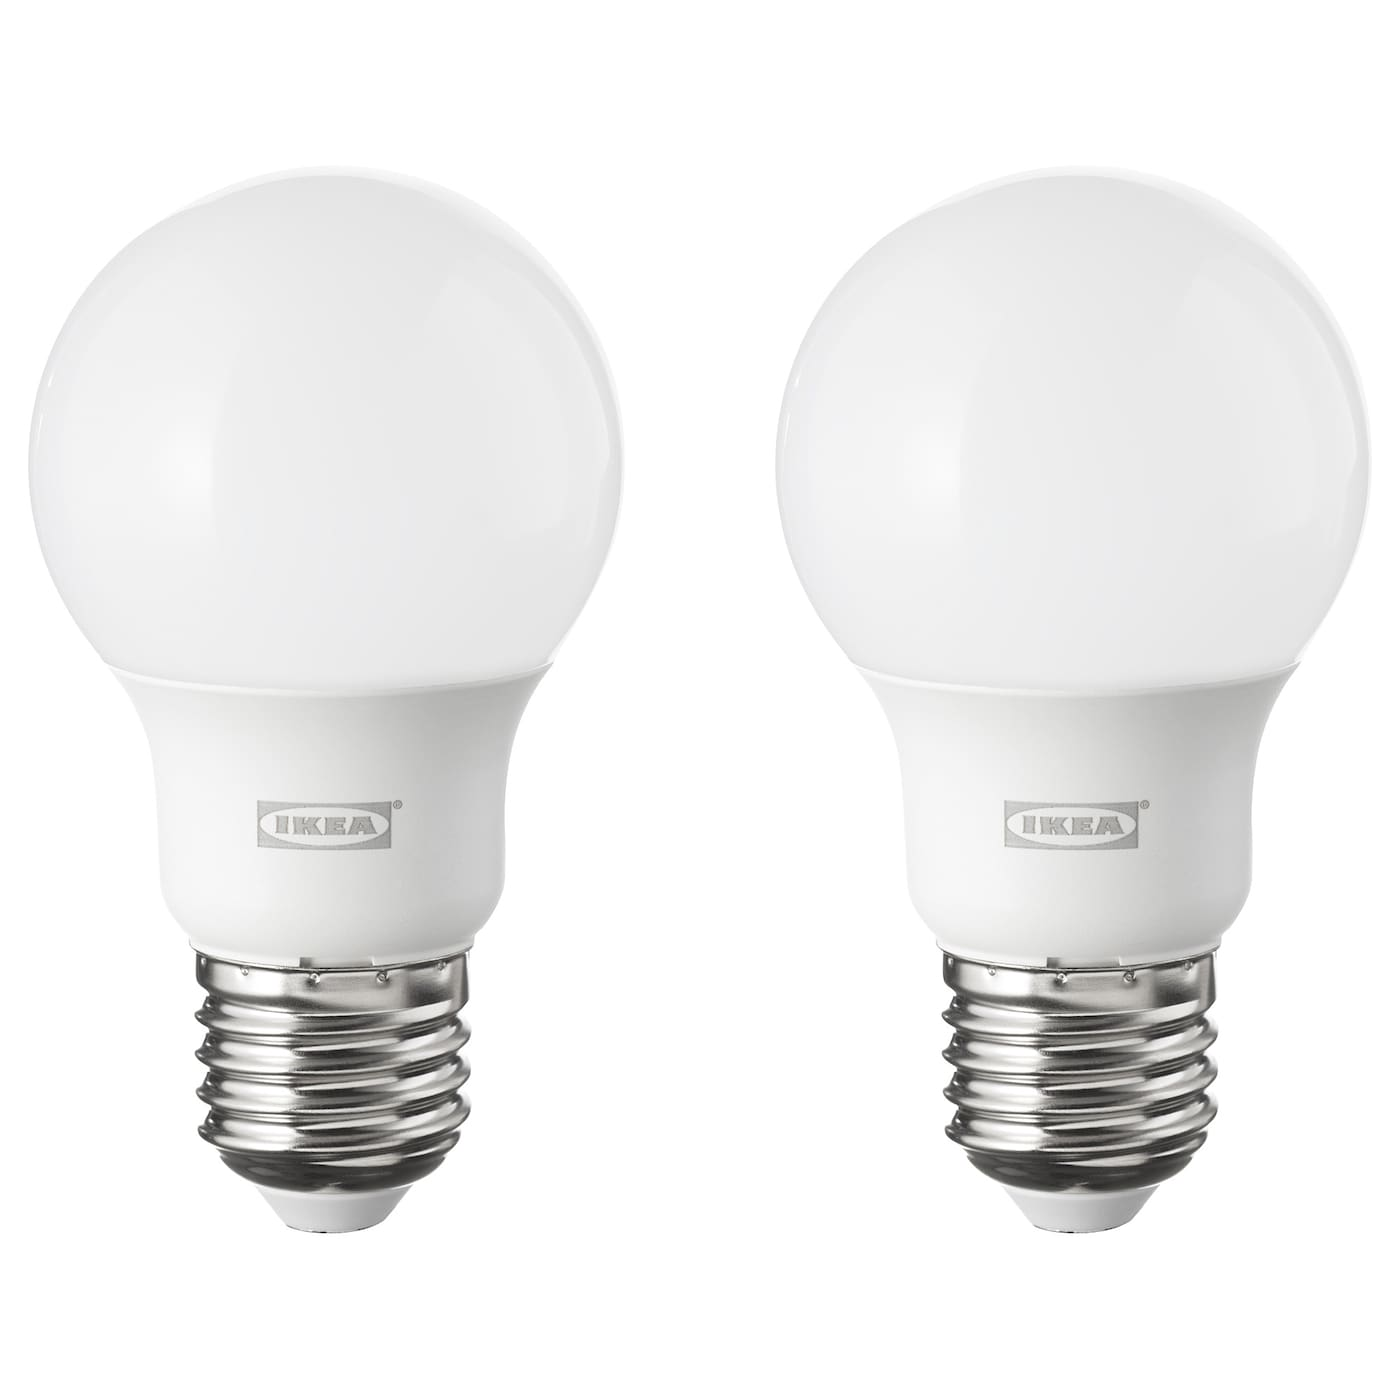 Light Bulbs Led Accessories Ikea To A Small Lightbulb With Just One Battery And Wire Ryet Bulb E27 600 Lumen